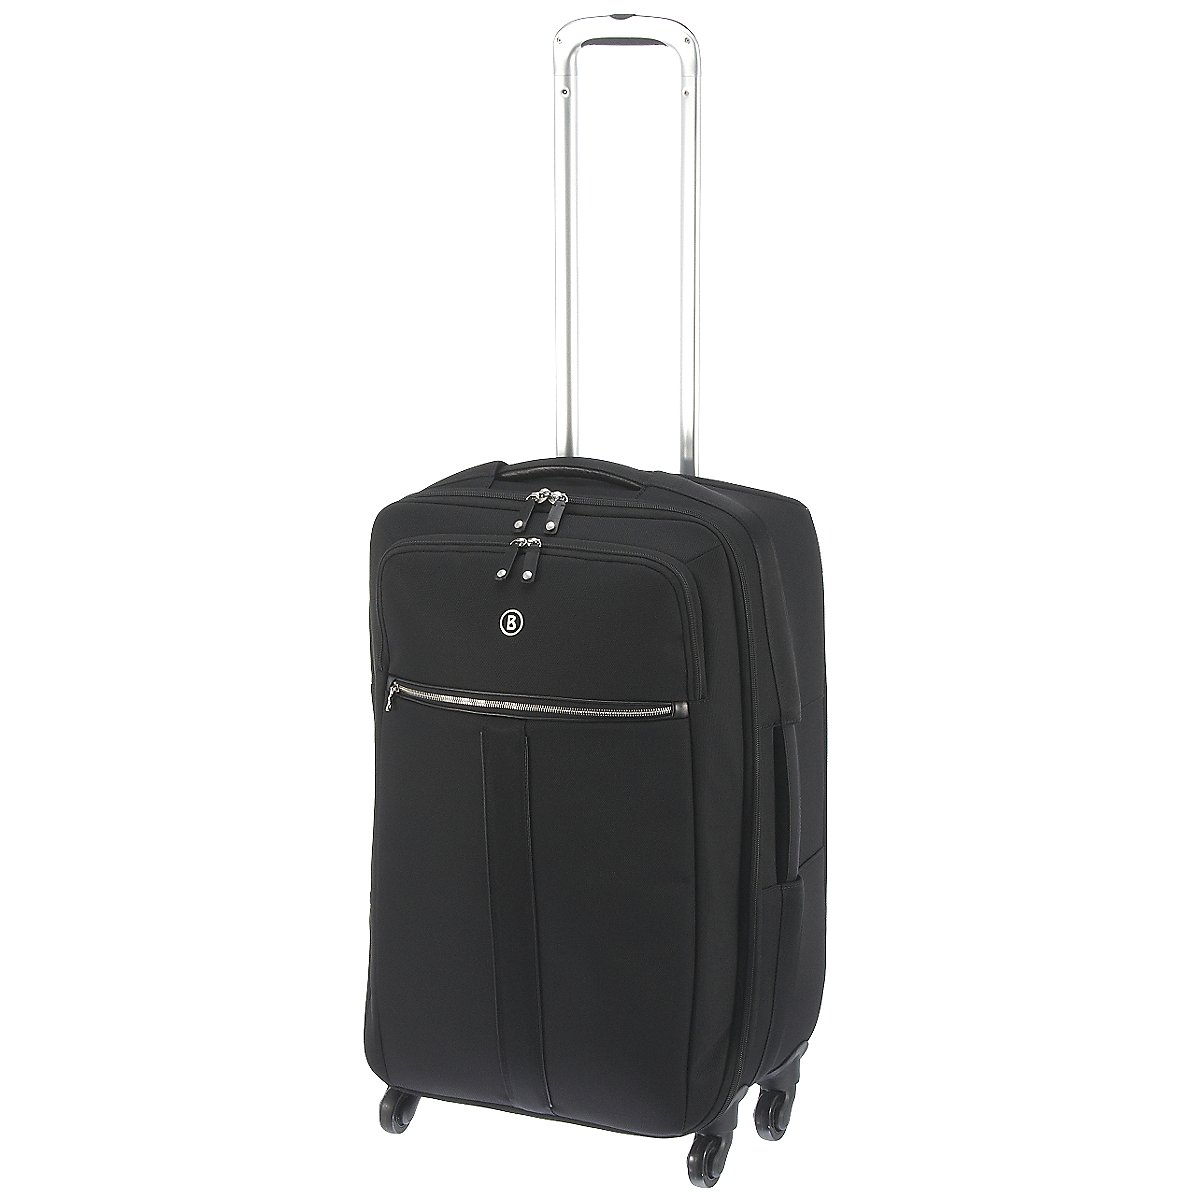 bogner travel 4 rollen trolley 69 cm koffer. Black Bedroom Furniture Sets. Home Design Ideas